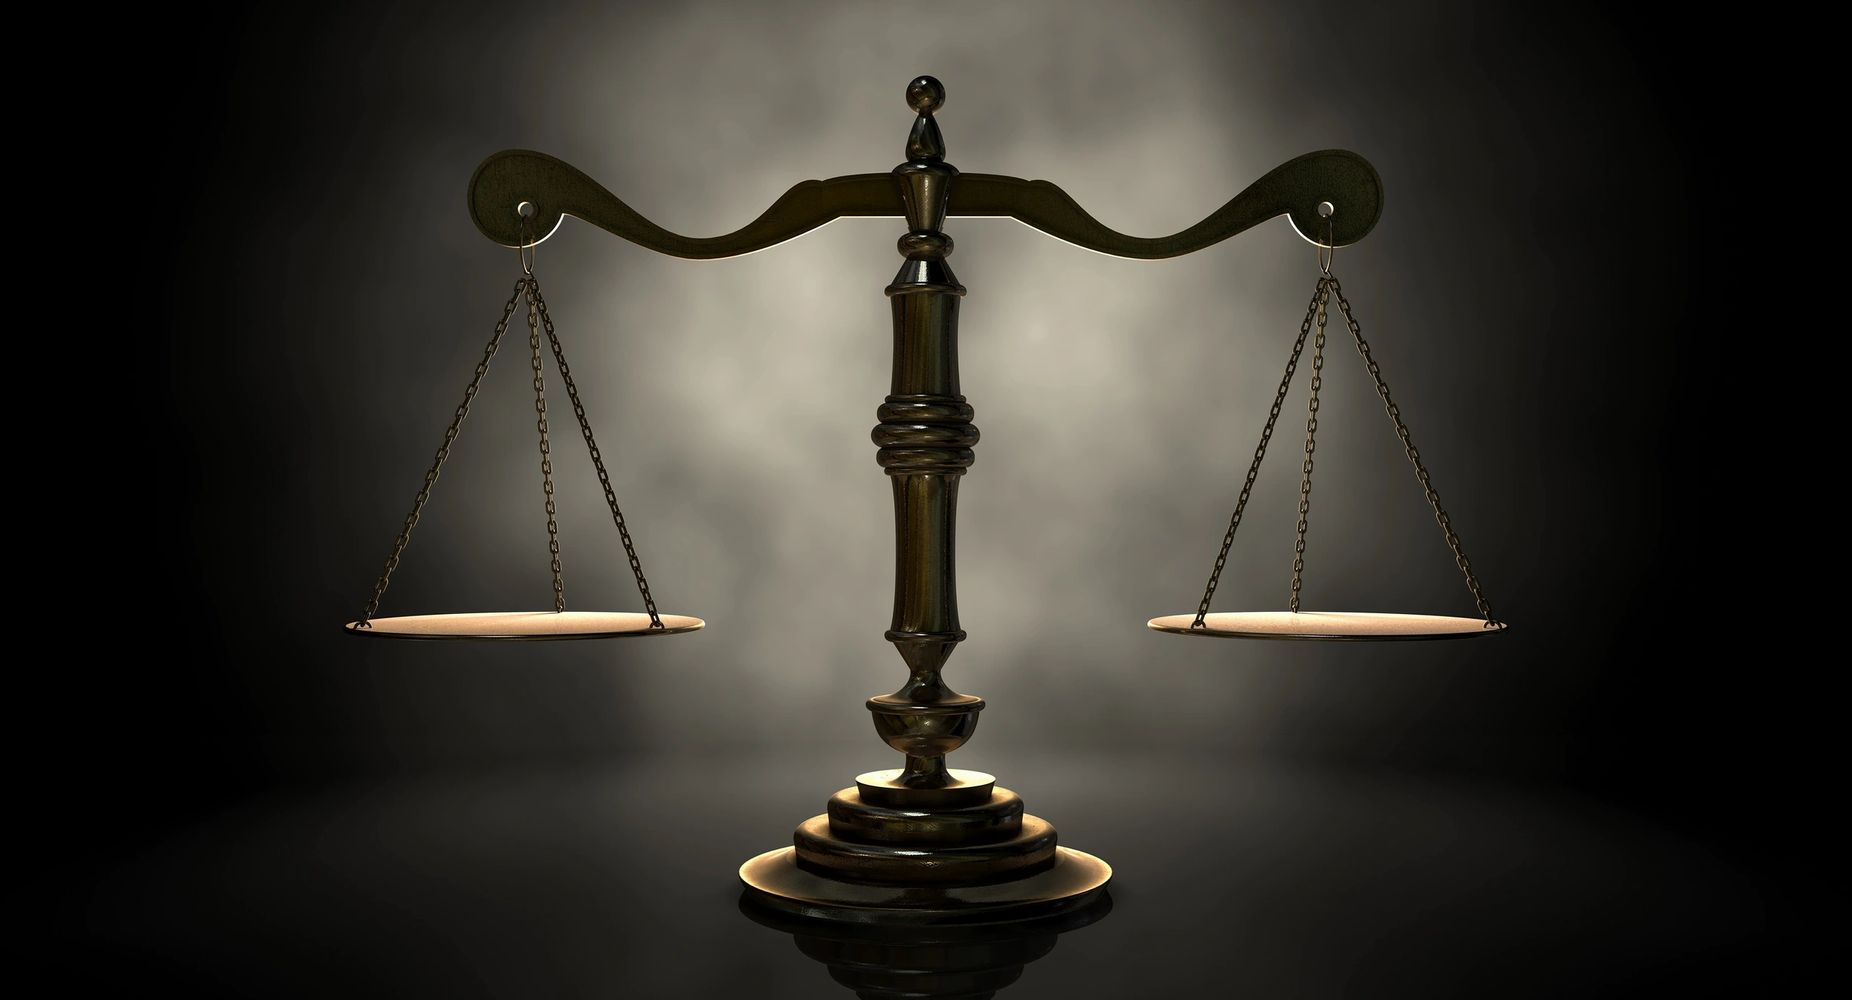 solid brass scale in dim lighting